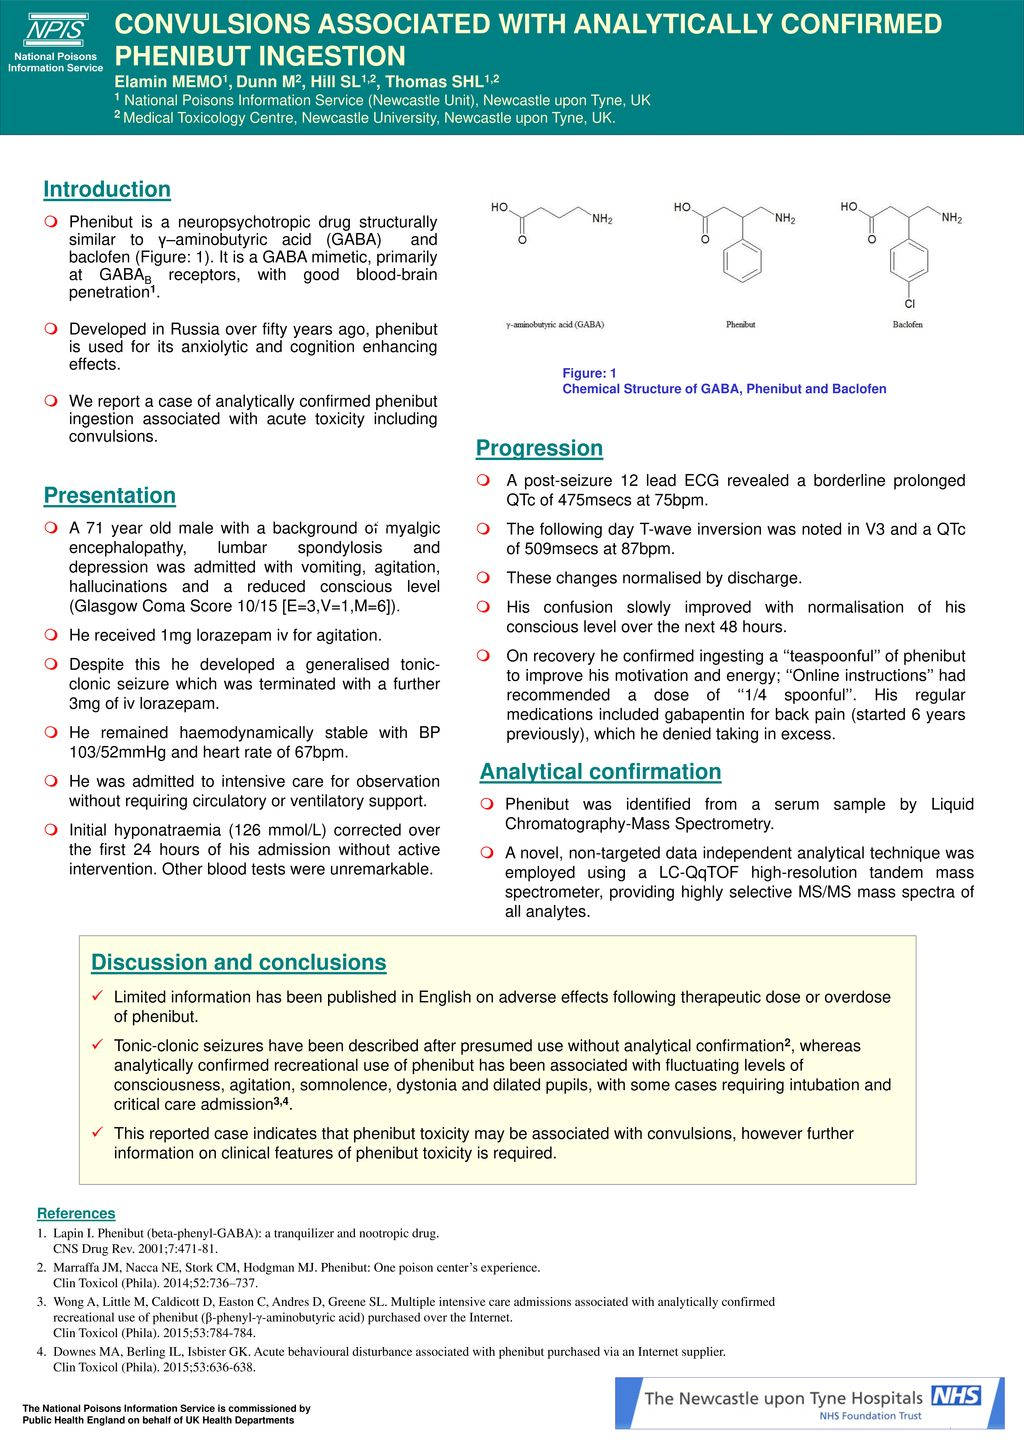 CONVULSIONS ASSOCIATED WITH ANALYTICALLY CONFIRMED PHENIBUT